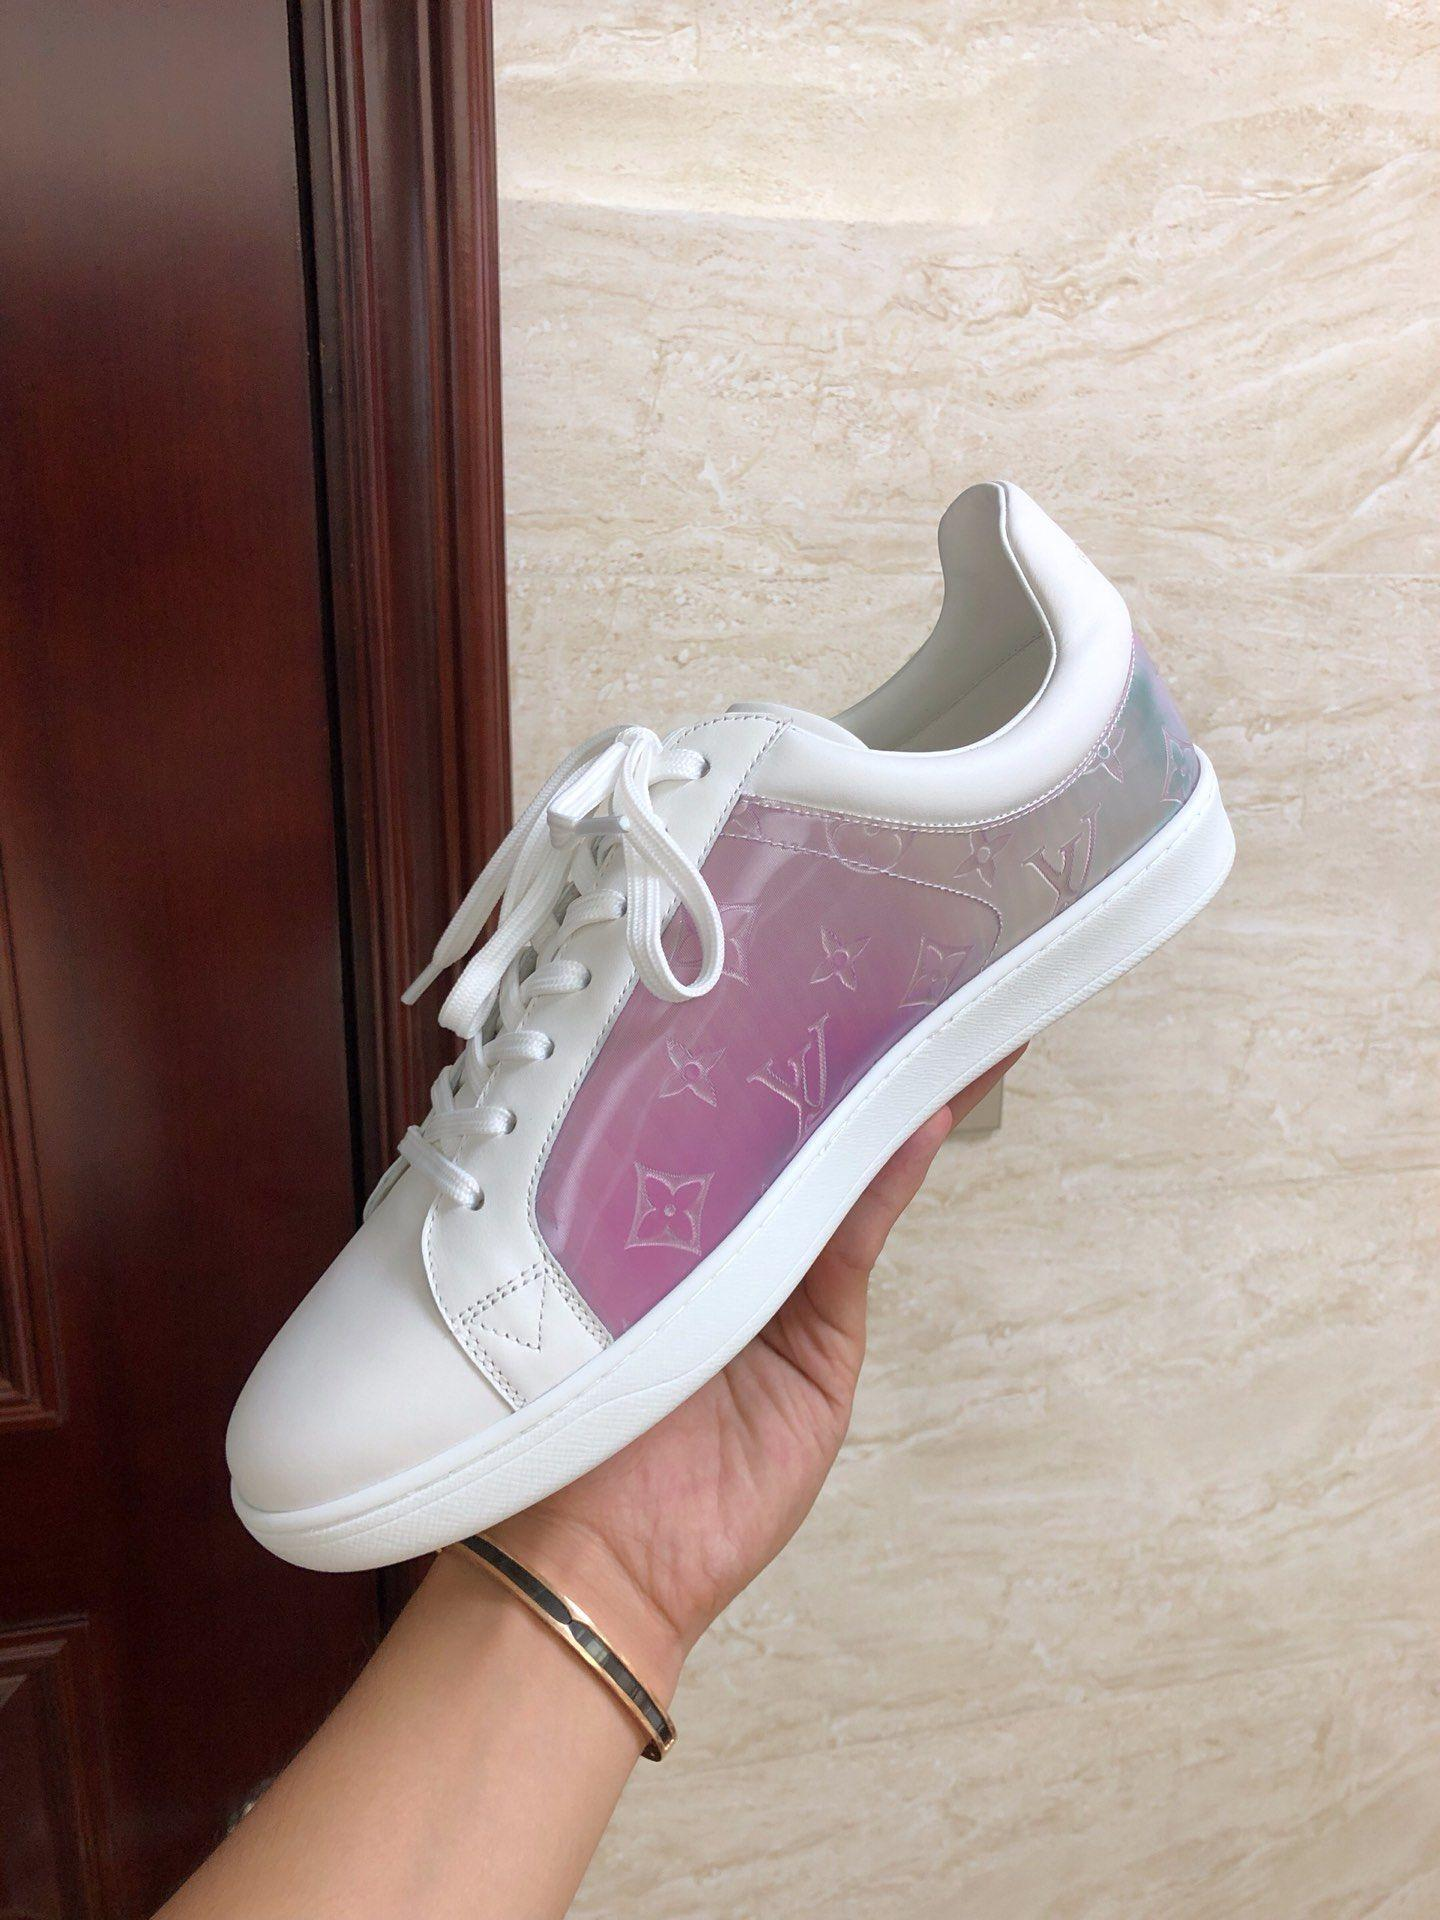 louis vuitton sneaker luxembourg Rose lv sneaker newest lv shoes 1A5HBA   8